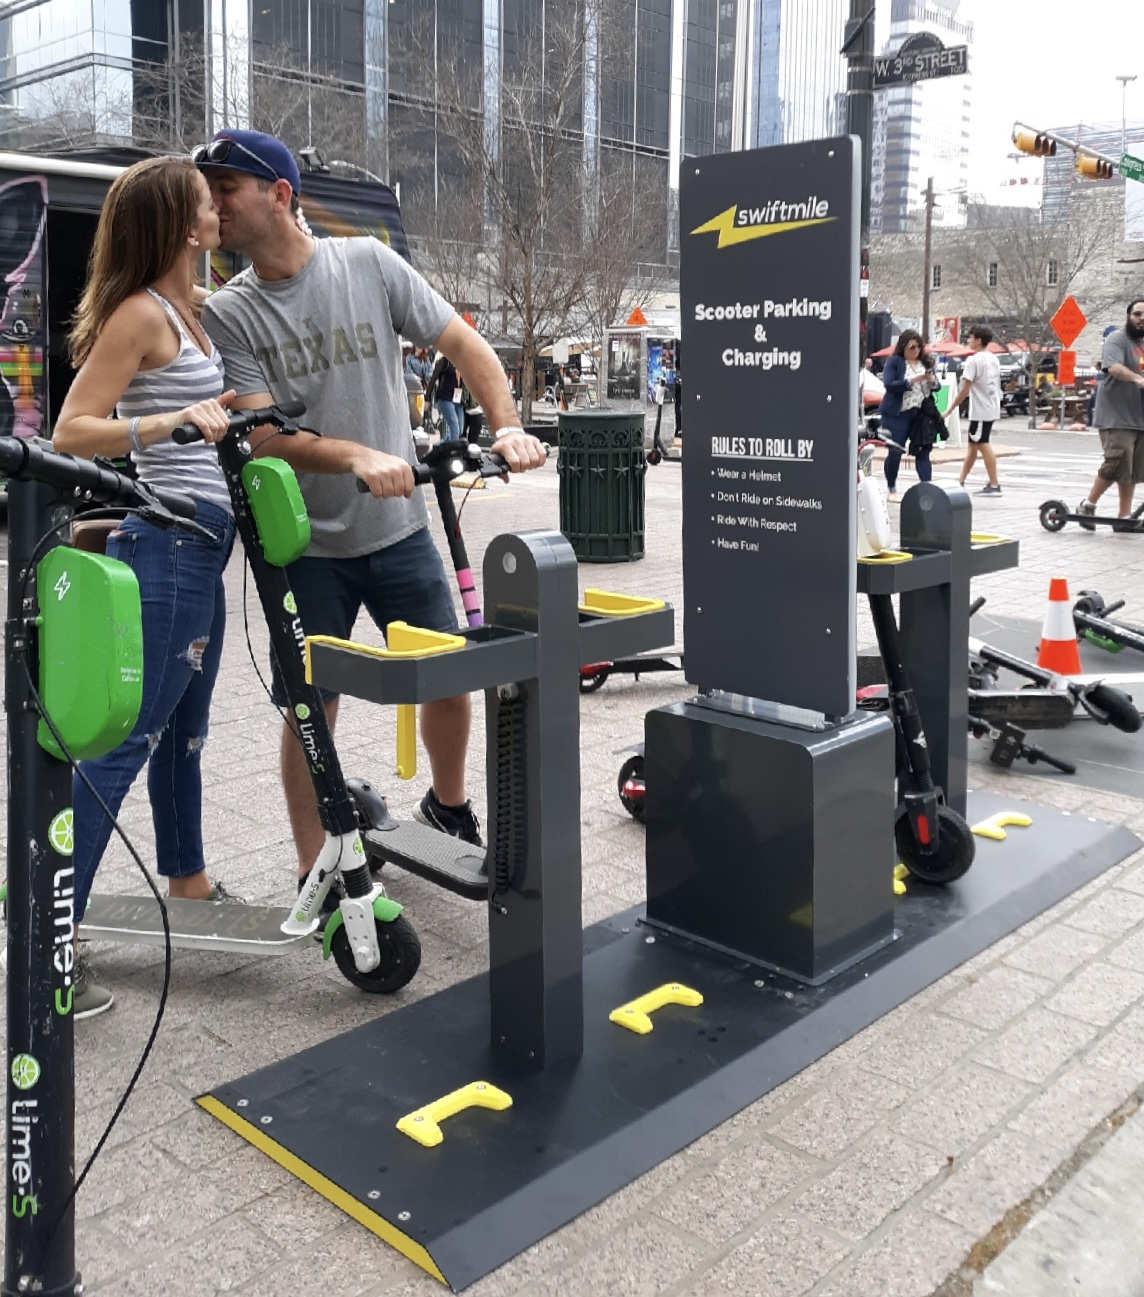 washingtonpost.com - Peter Holley - E-scooter startup Spin will place dozens of solar-powered docking stations in two cities this summer